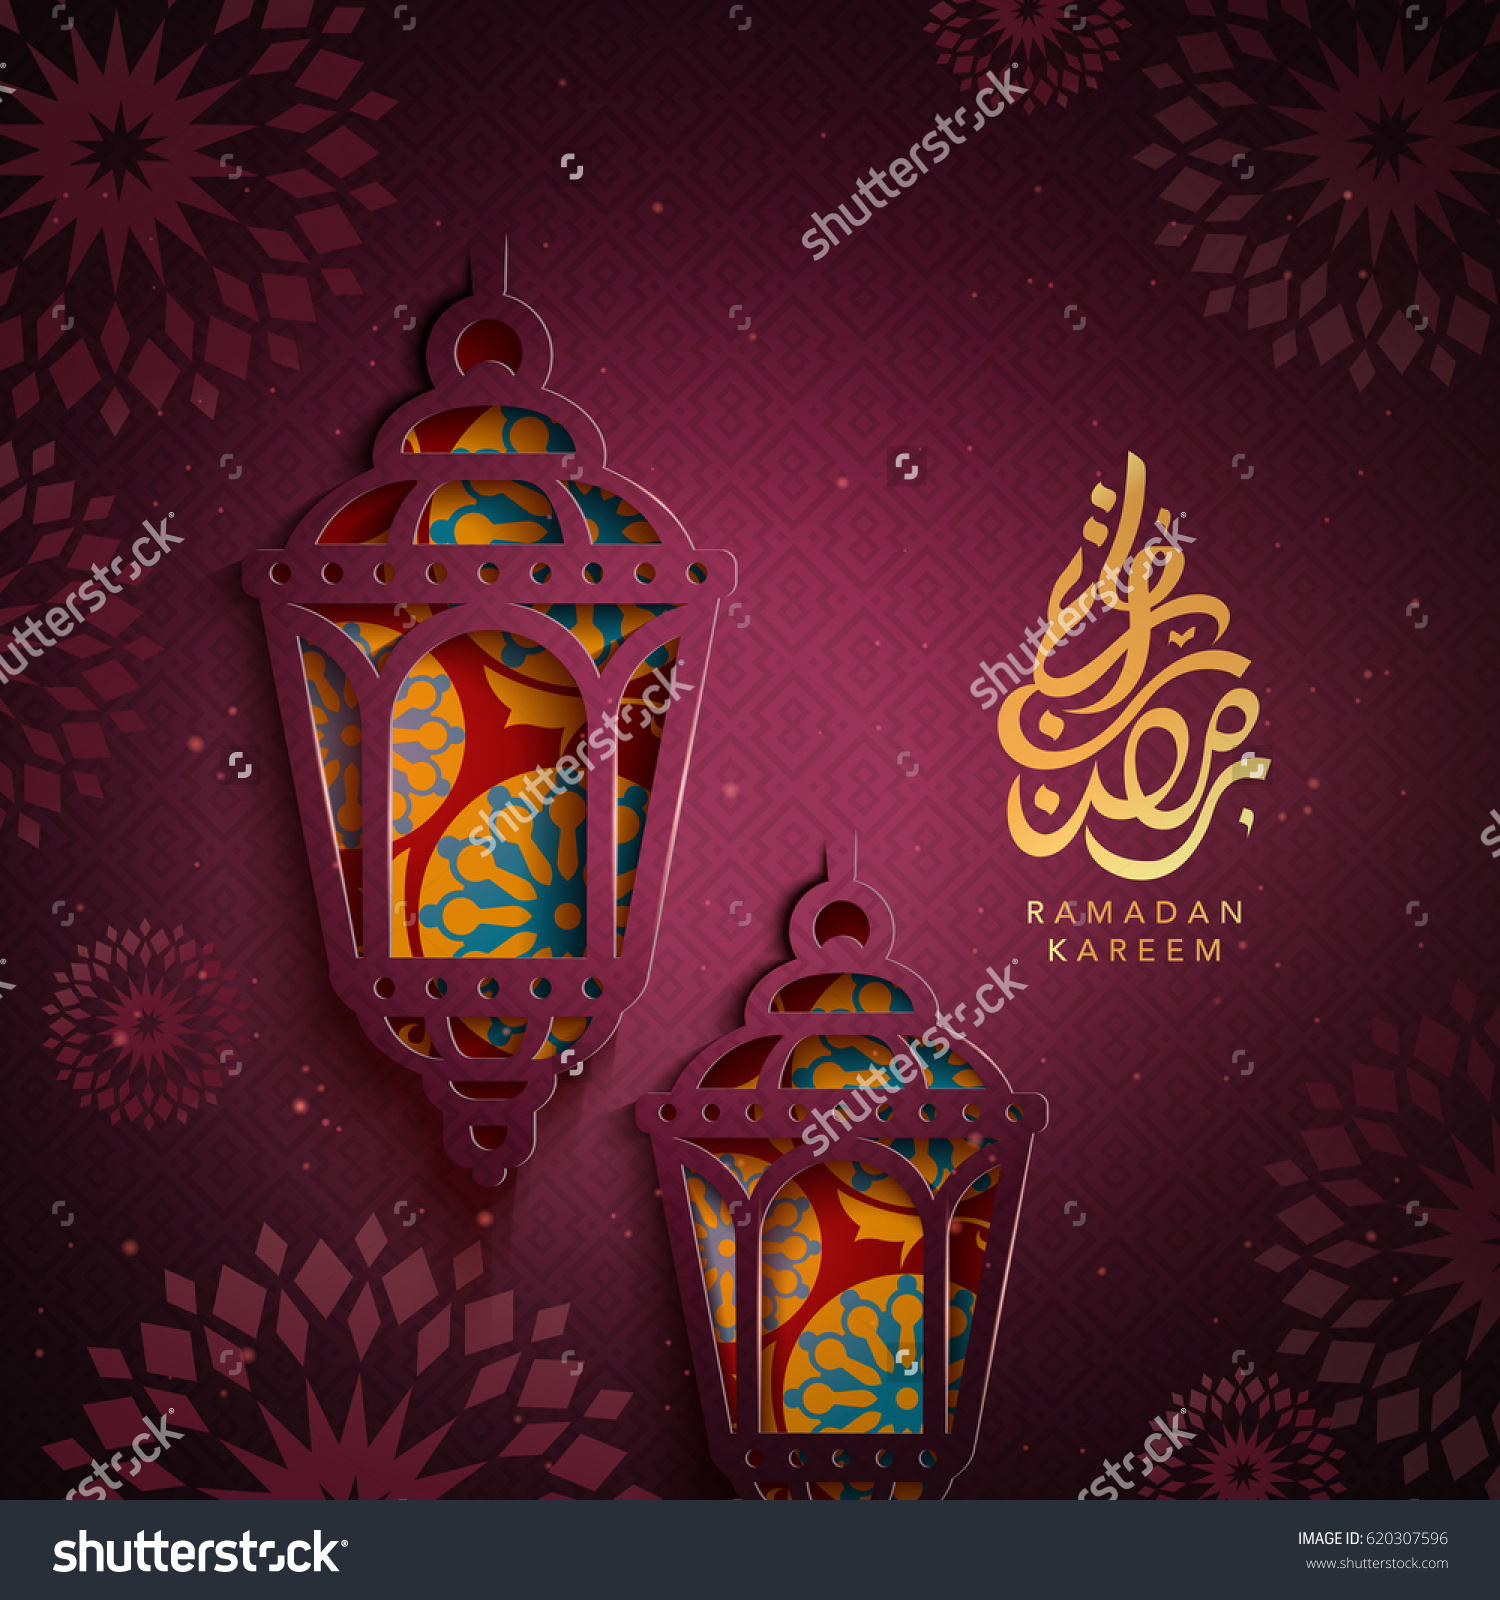 a83n_stock-photo-arabic-calligraphy-design-for-ramadan-with-lanterns-and-paper-cutting-arts-620307596.jpg